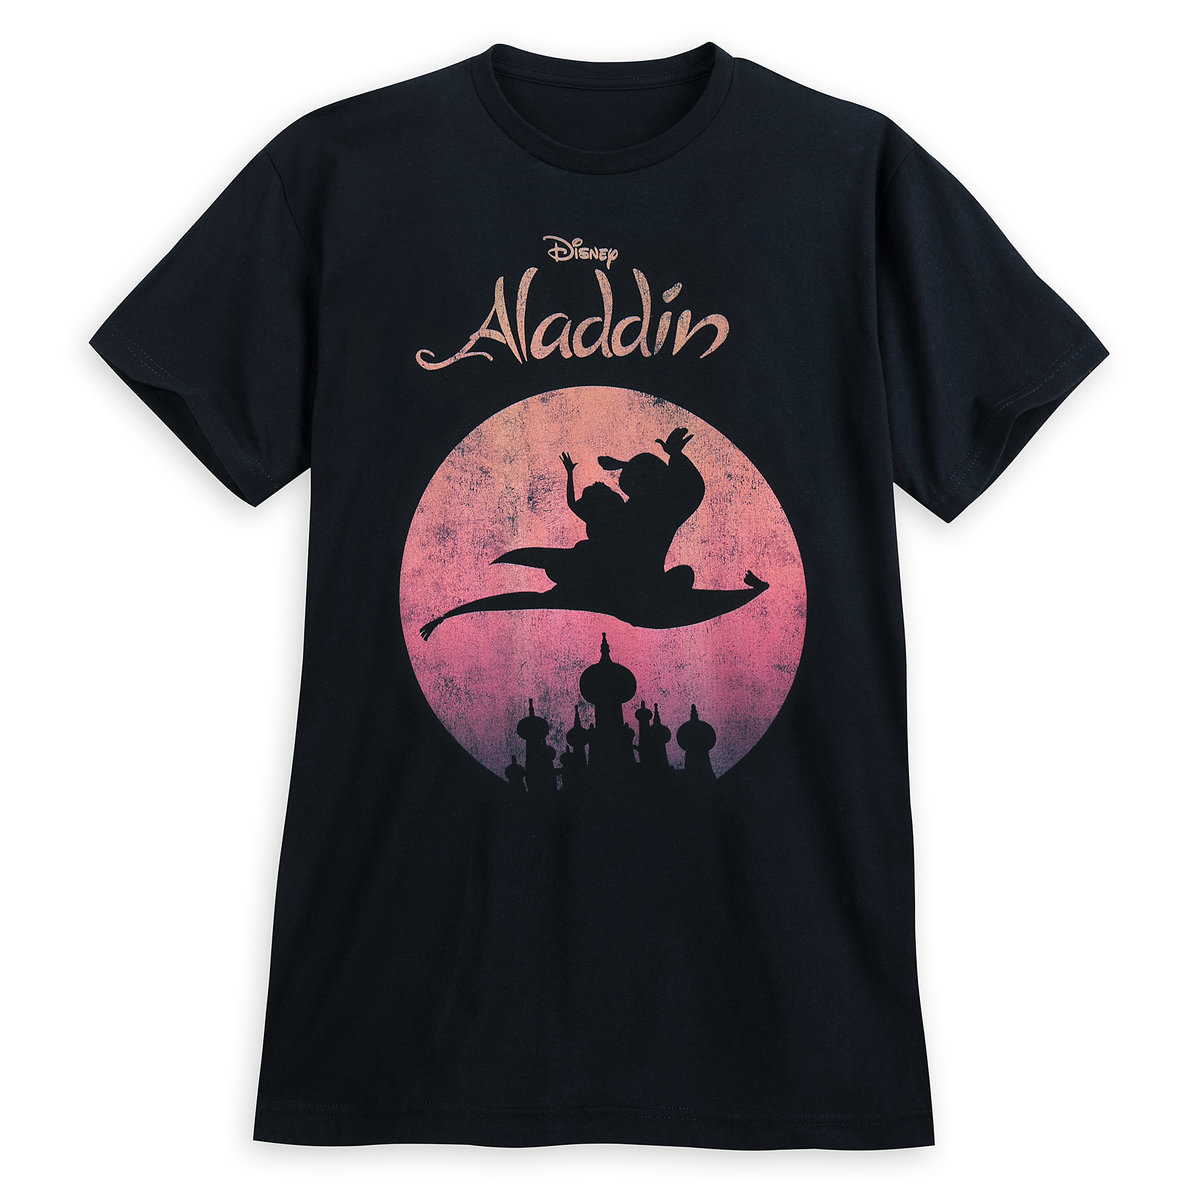 a2c20ffe1 Product Image of Aladdin Flying Carpet Ride T-Shirt for Men # 1